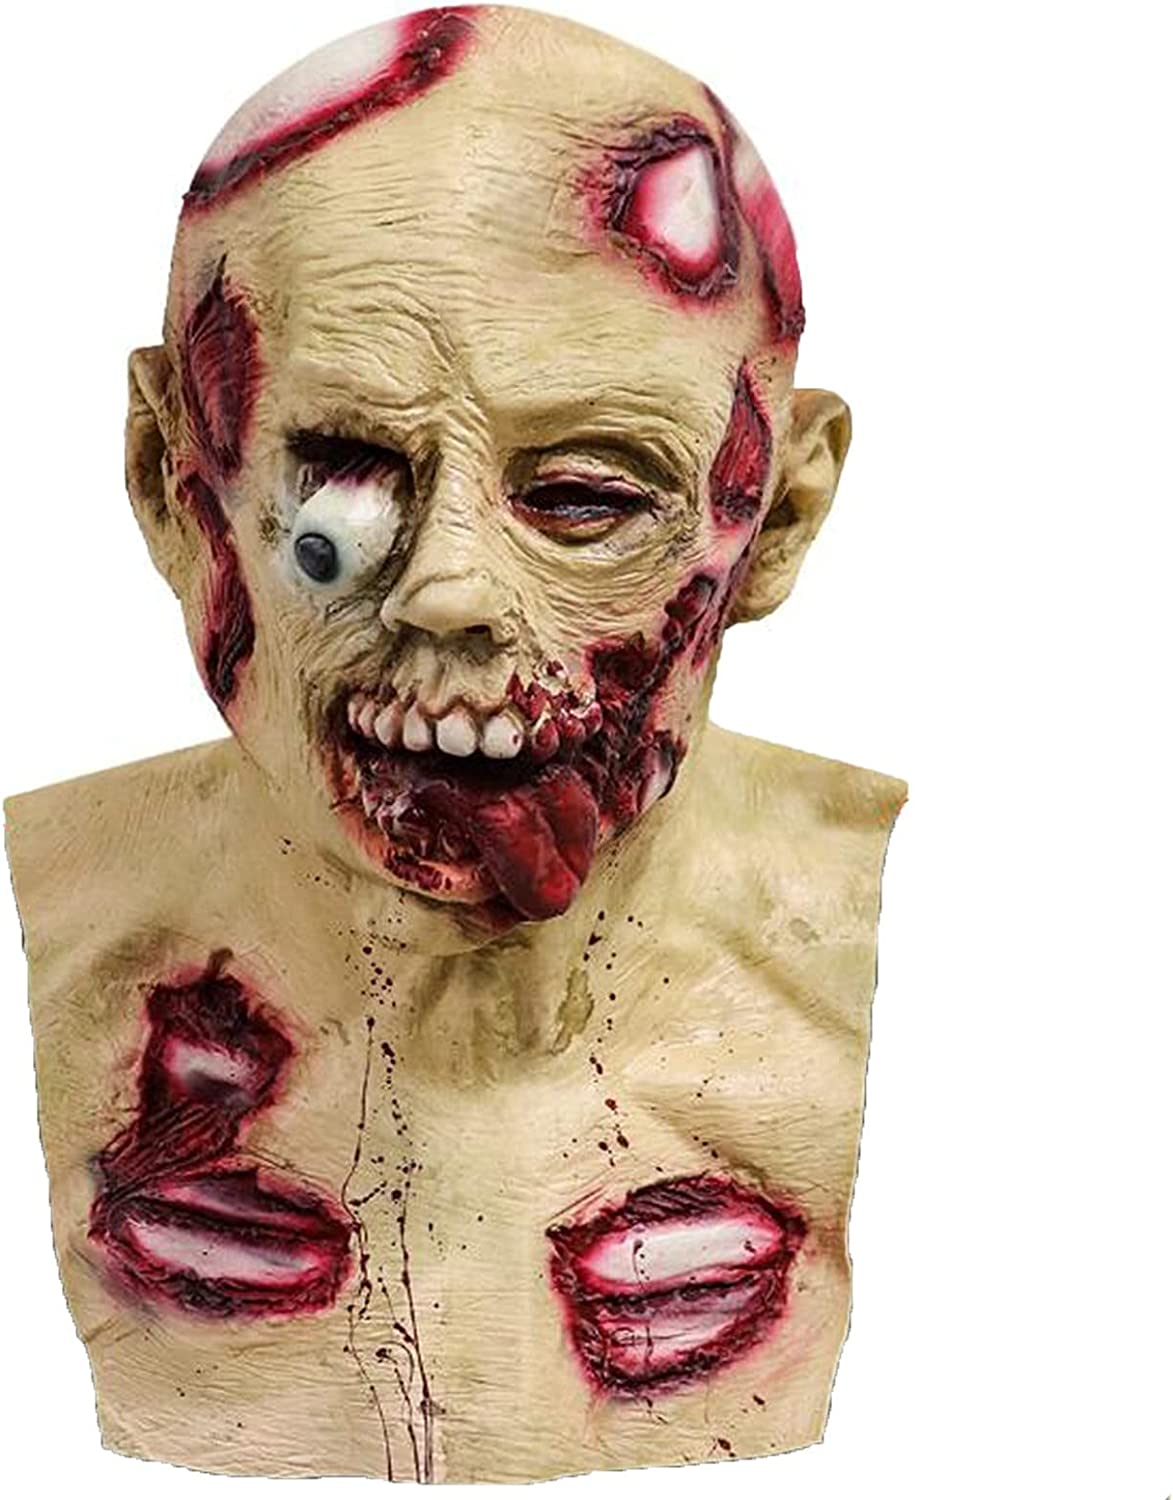 Halloween Great interest Adult Comfortable Creepy Headgear Realistic Skul Scary New Shipping Free Shipping